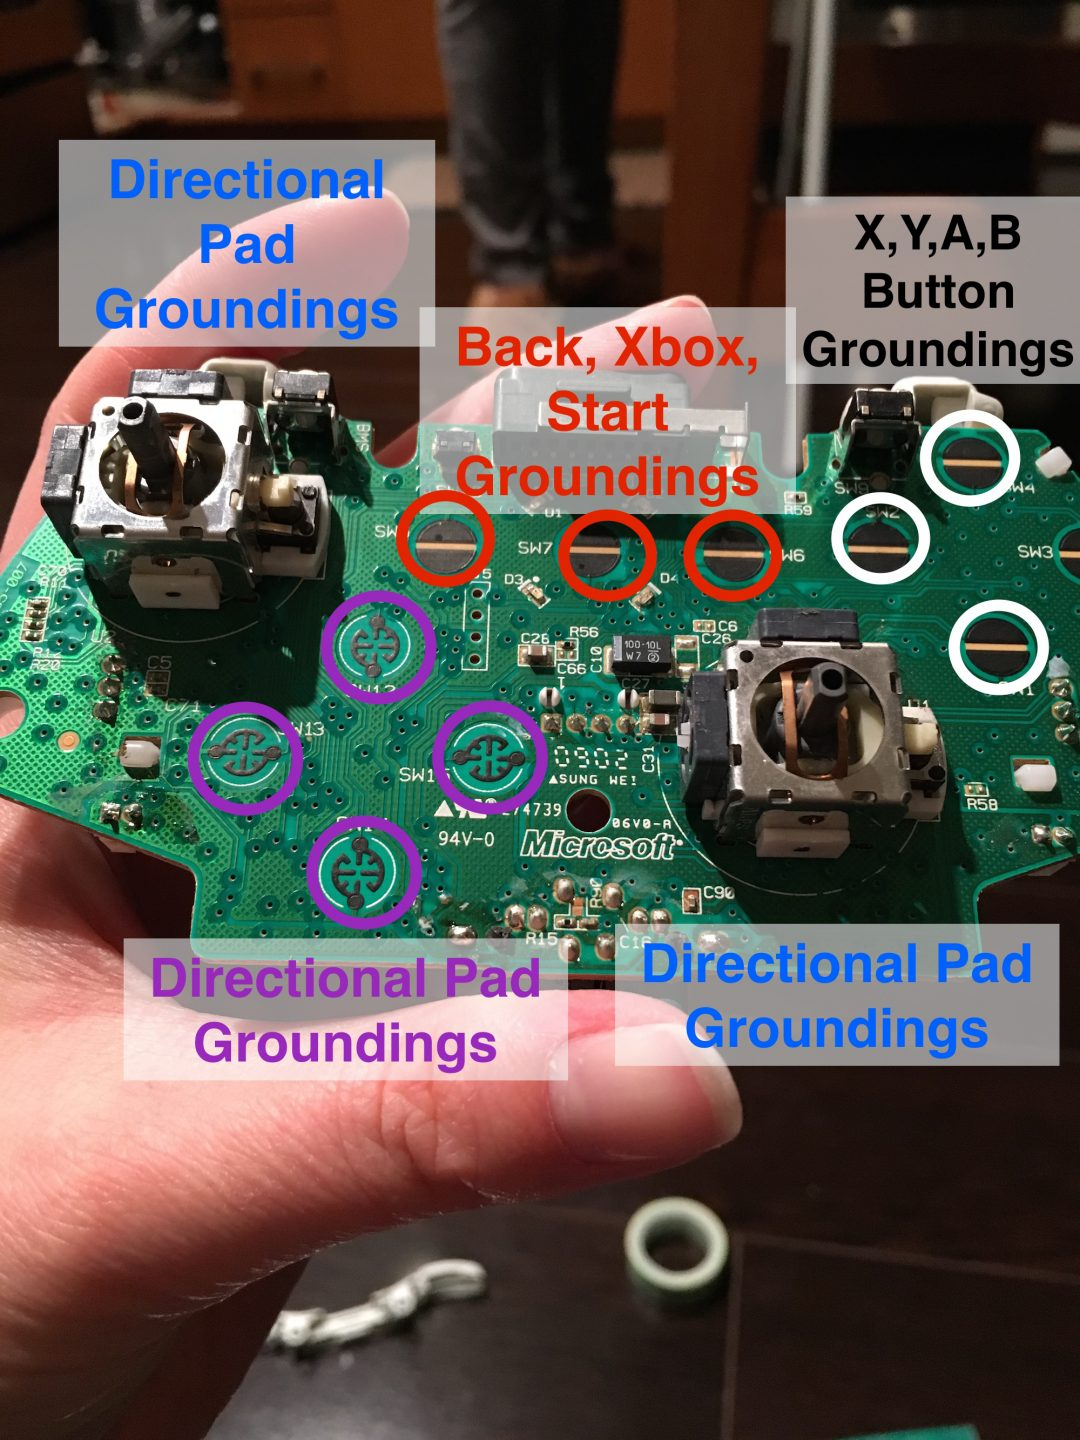 Xbox Wired Controller Wiring Diagrams | Wiring Diagram - Xbox 360 Controller Usb Wiring Diagram